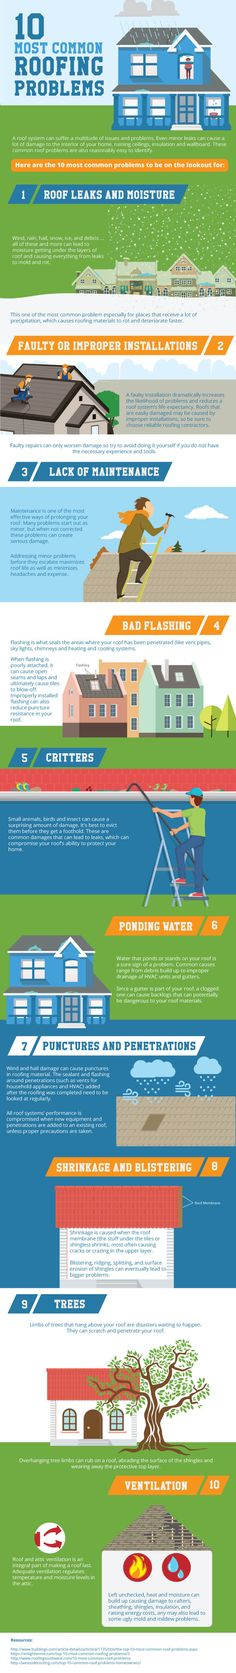 This infographic shows the 10 most common roofing problems to be on the lookout for. A roof system could suffer many problems and issues. Even minor leaks can c Roofing Services, Roofing Systems, Roofing Contractors, Best Vinyl Siding, Affordable Roofing, Spring Images, Cool Roof, Roof Covering, Ad Design